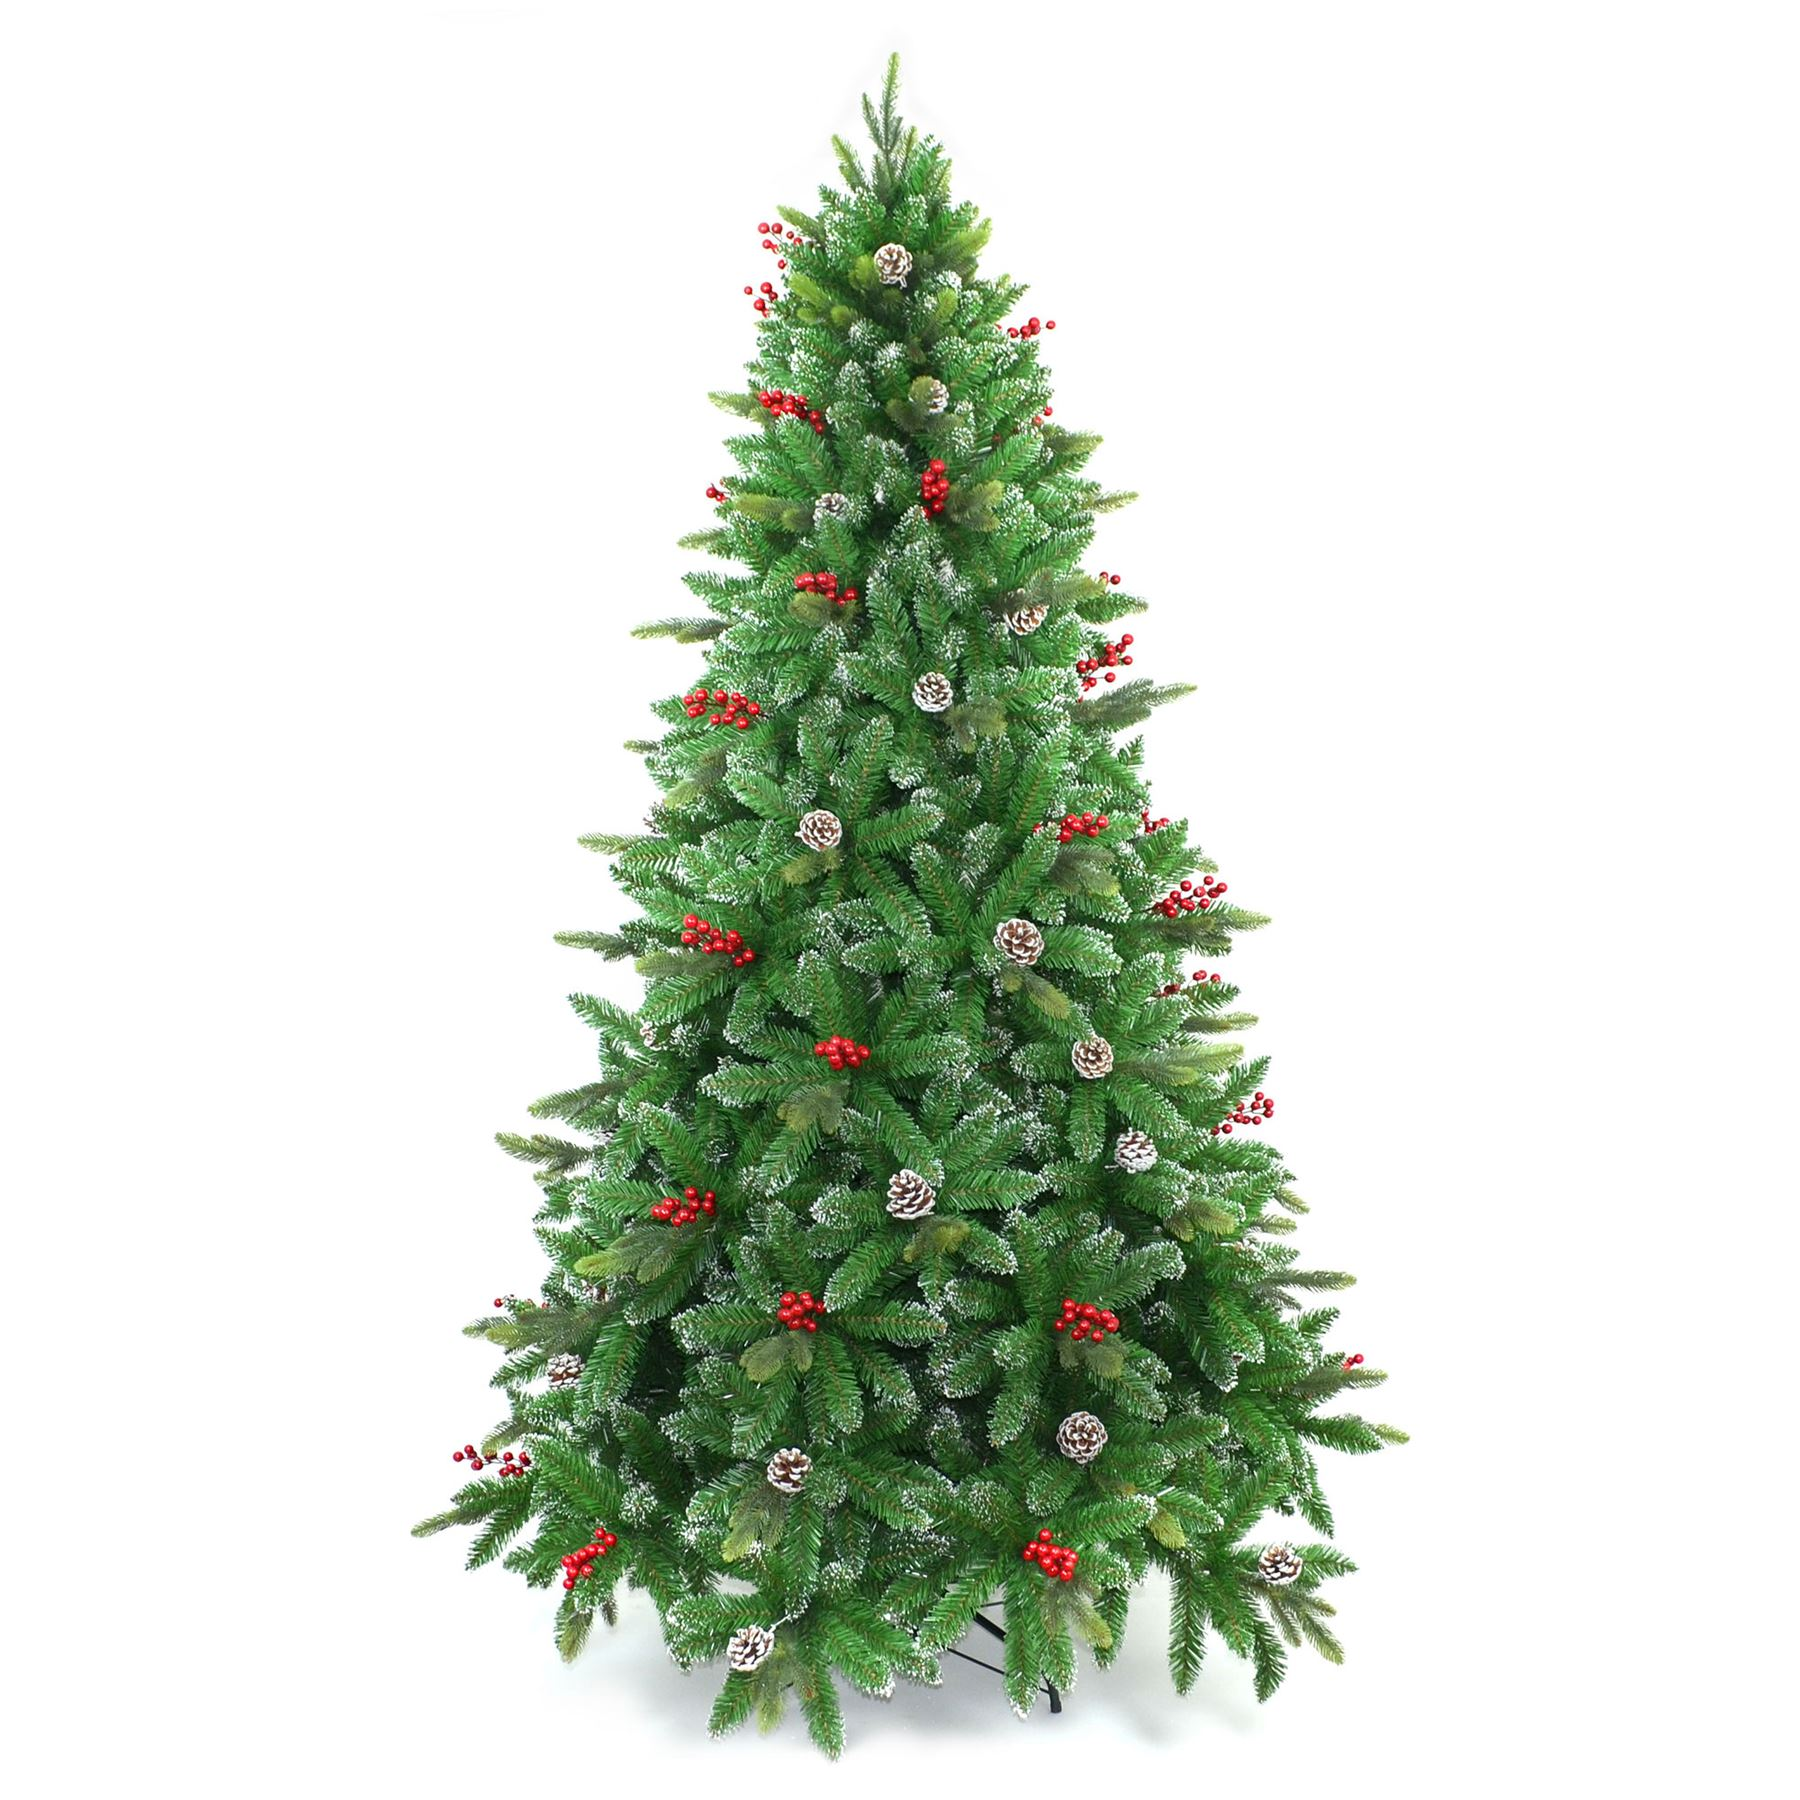 artificial christmas tree elegant standard led fibre optic pre lit decoration 6095 6ft about this product picture 1 of 2 picture 2 of 2